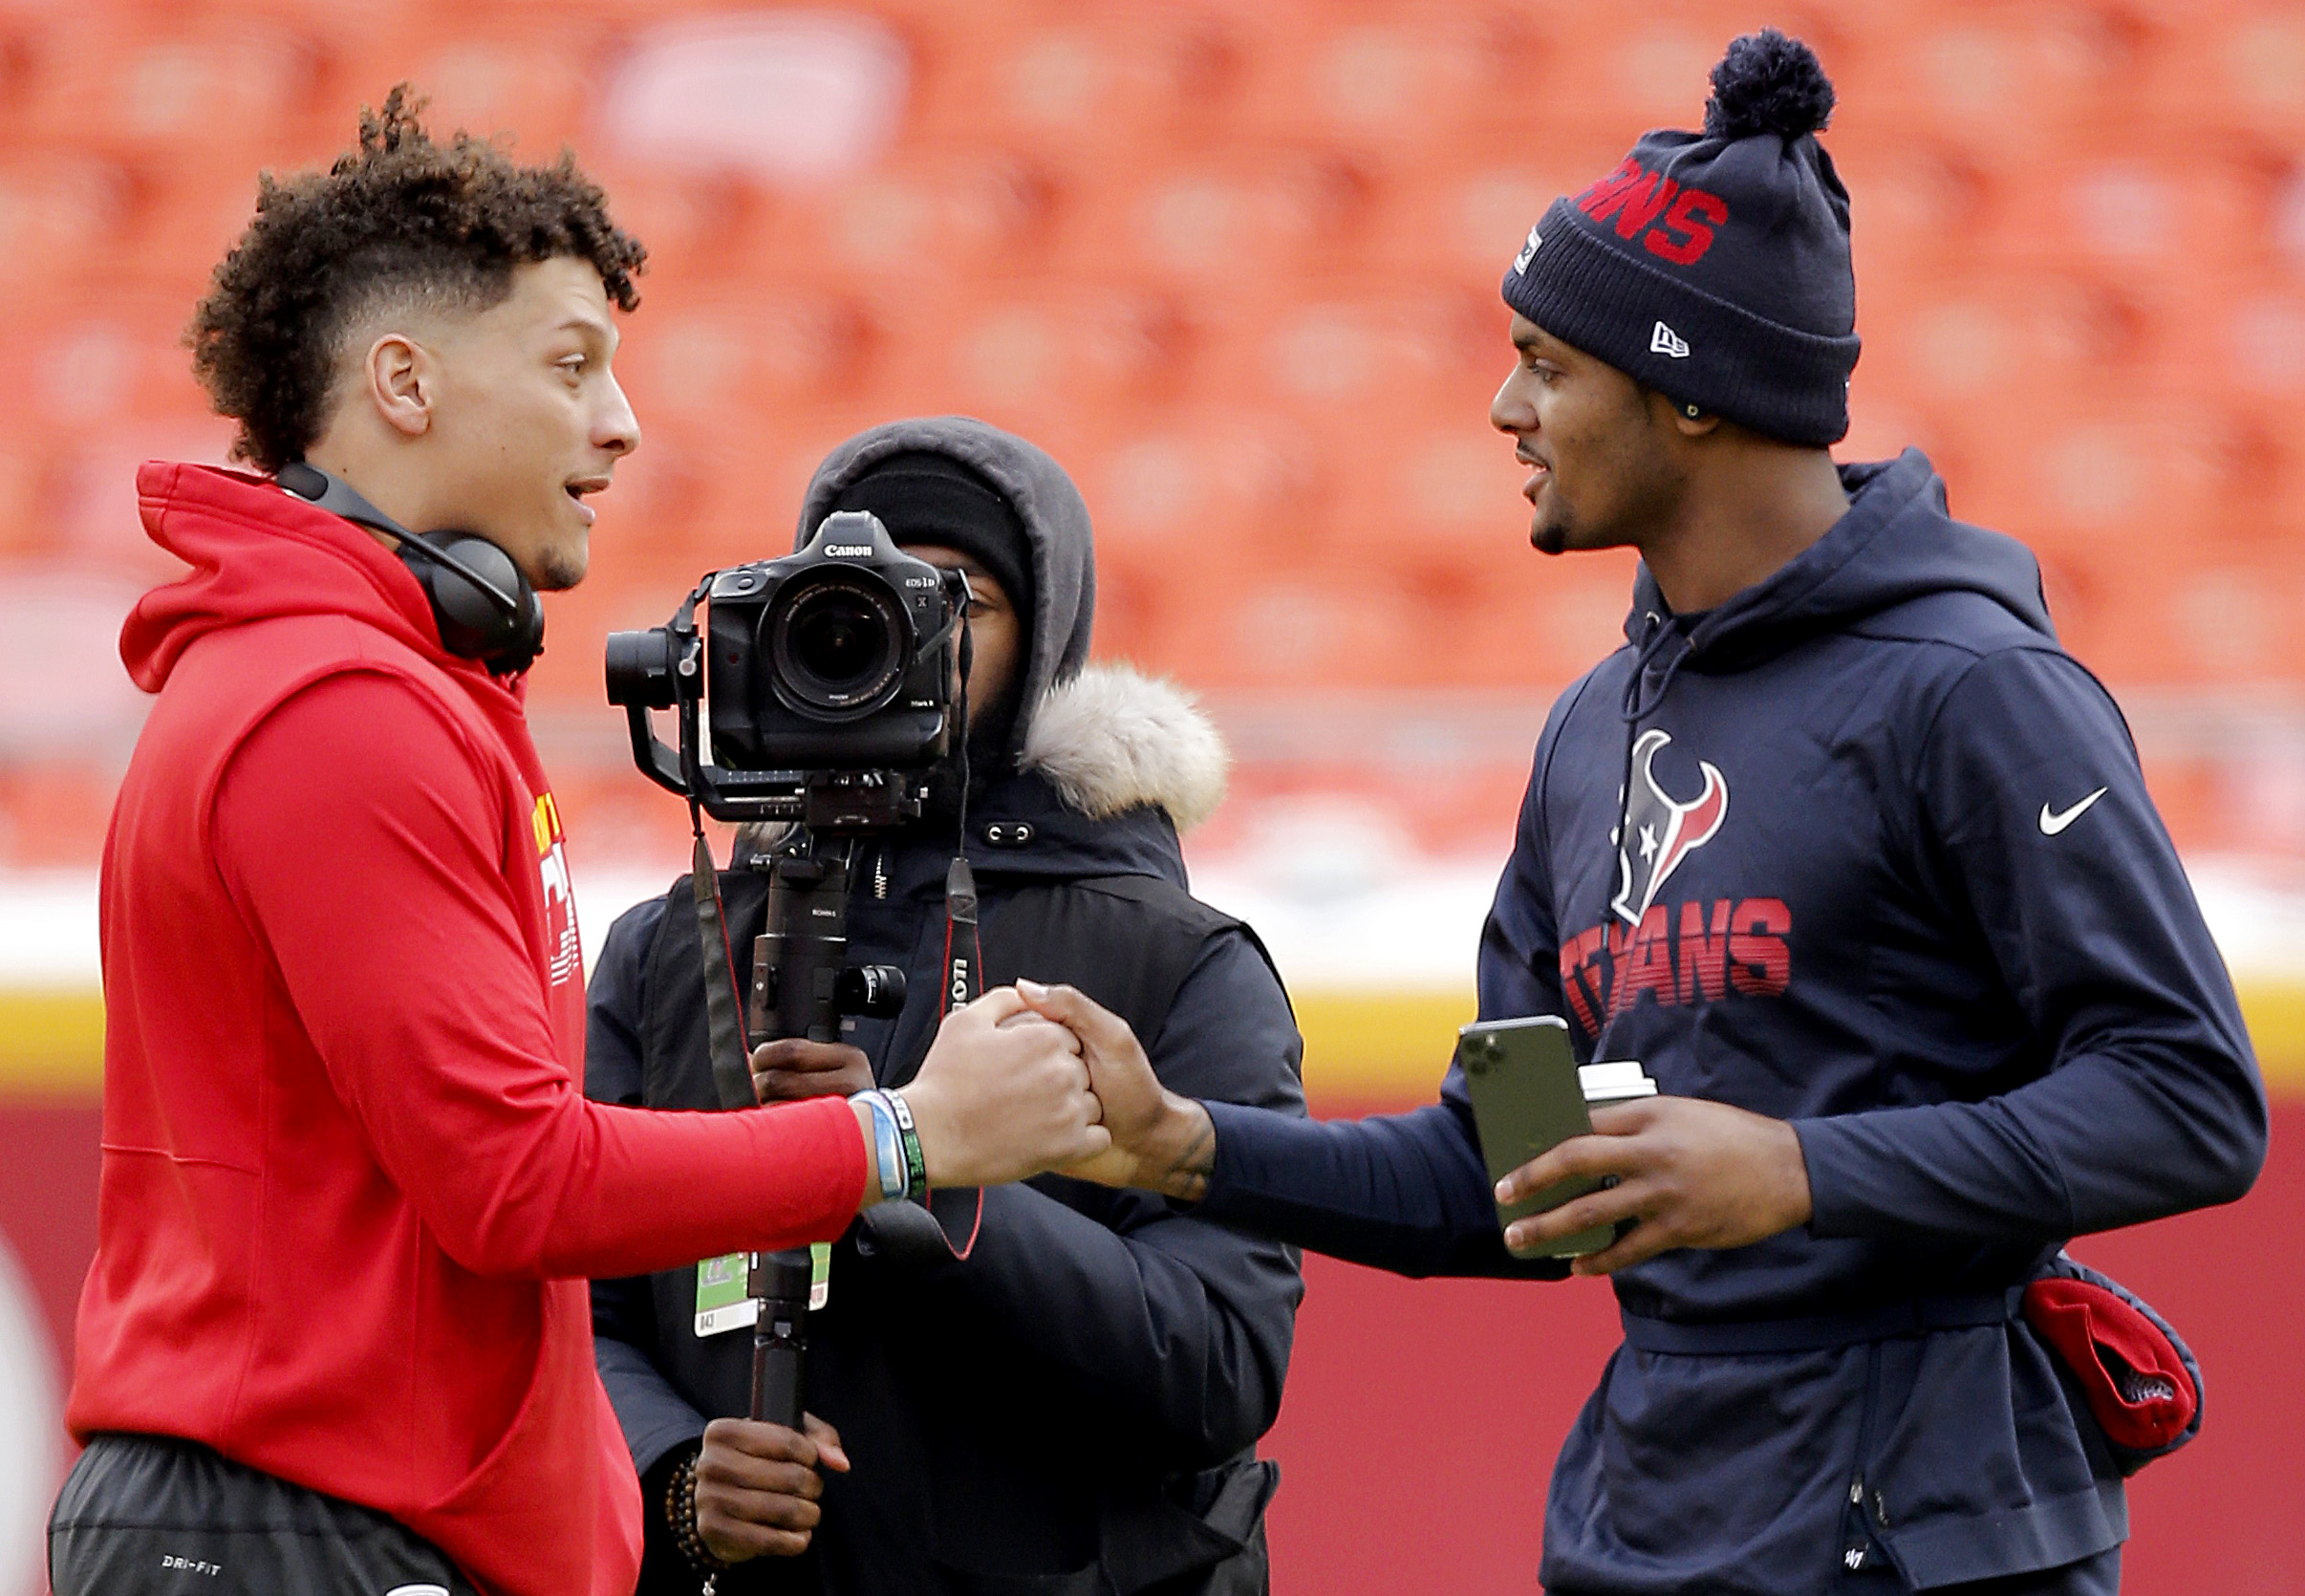 Deshaun Watson and Patrick Mahomes shake hands at midfield